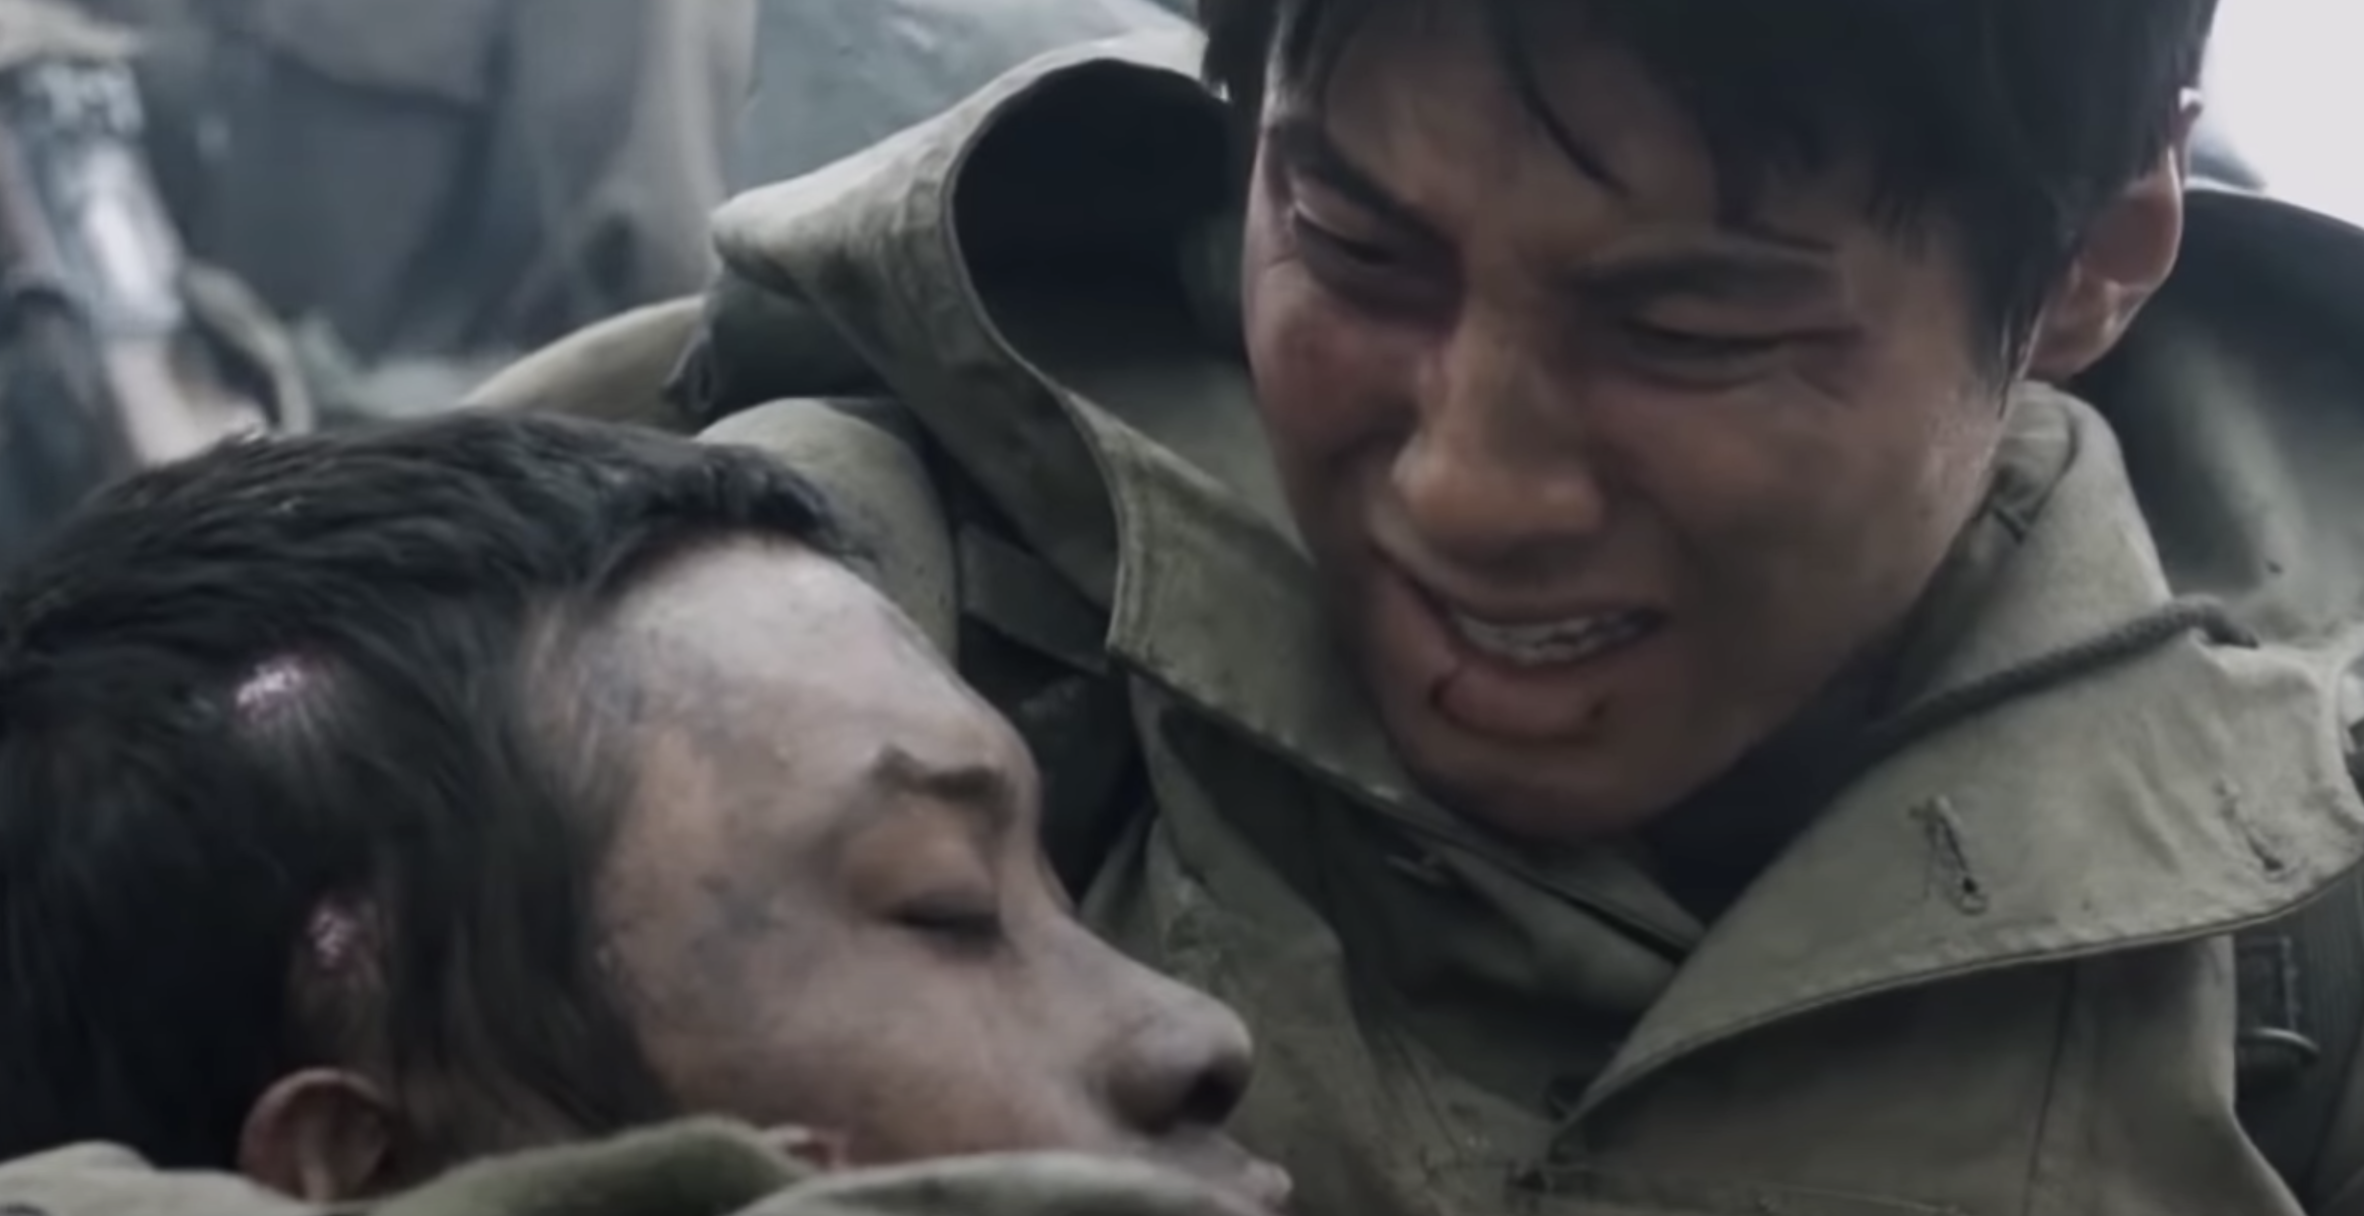 A soldier holding a fellow fallen soldier in his lap